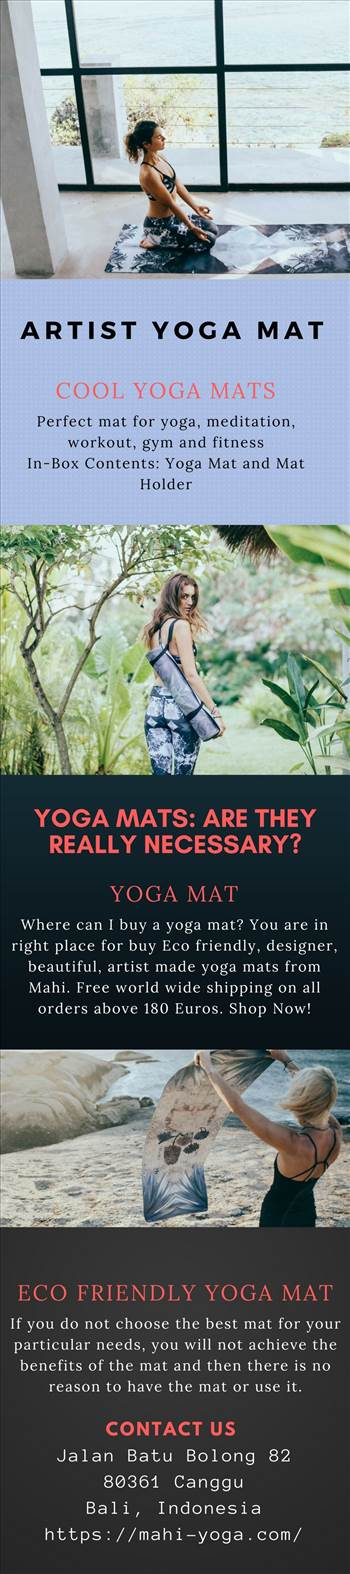 Where Can I Buy A Yoga Mat.jpg by Mahiyoga